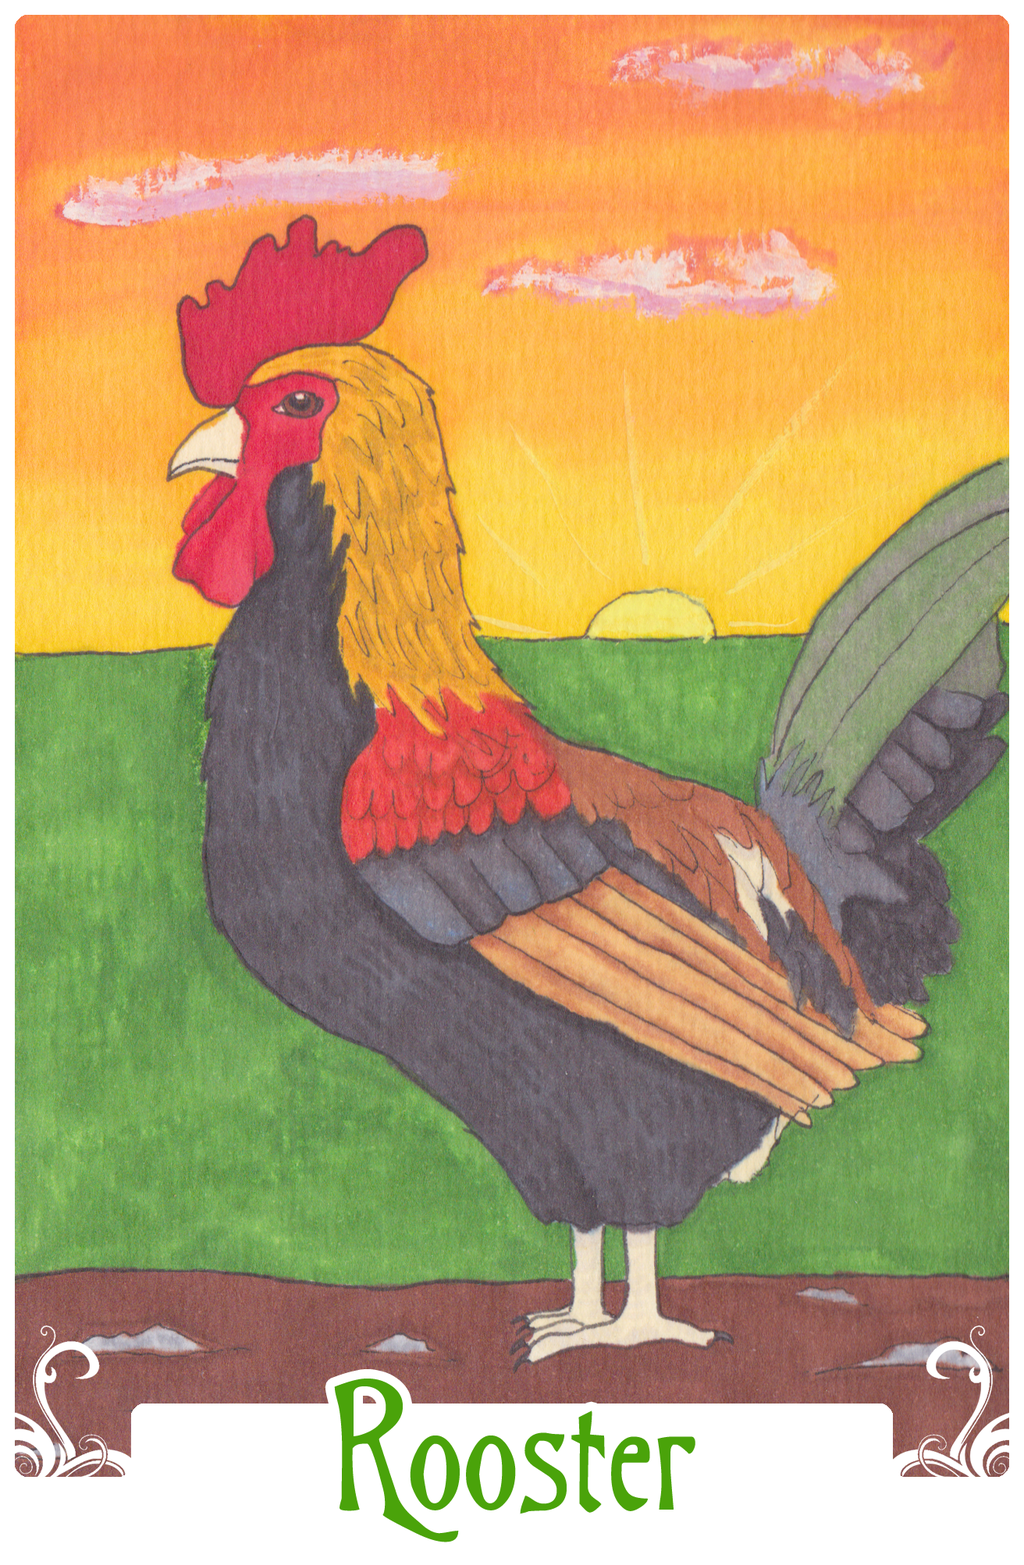 Rooster (2014)